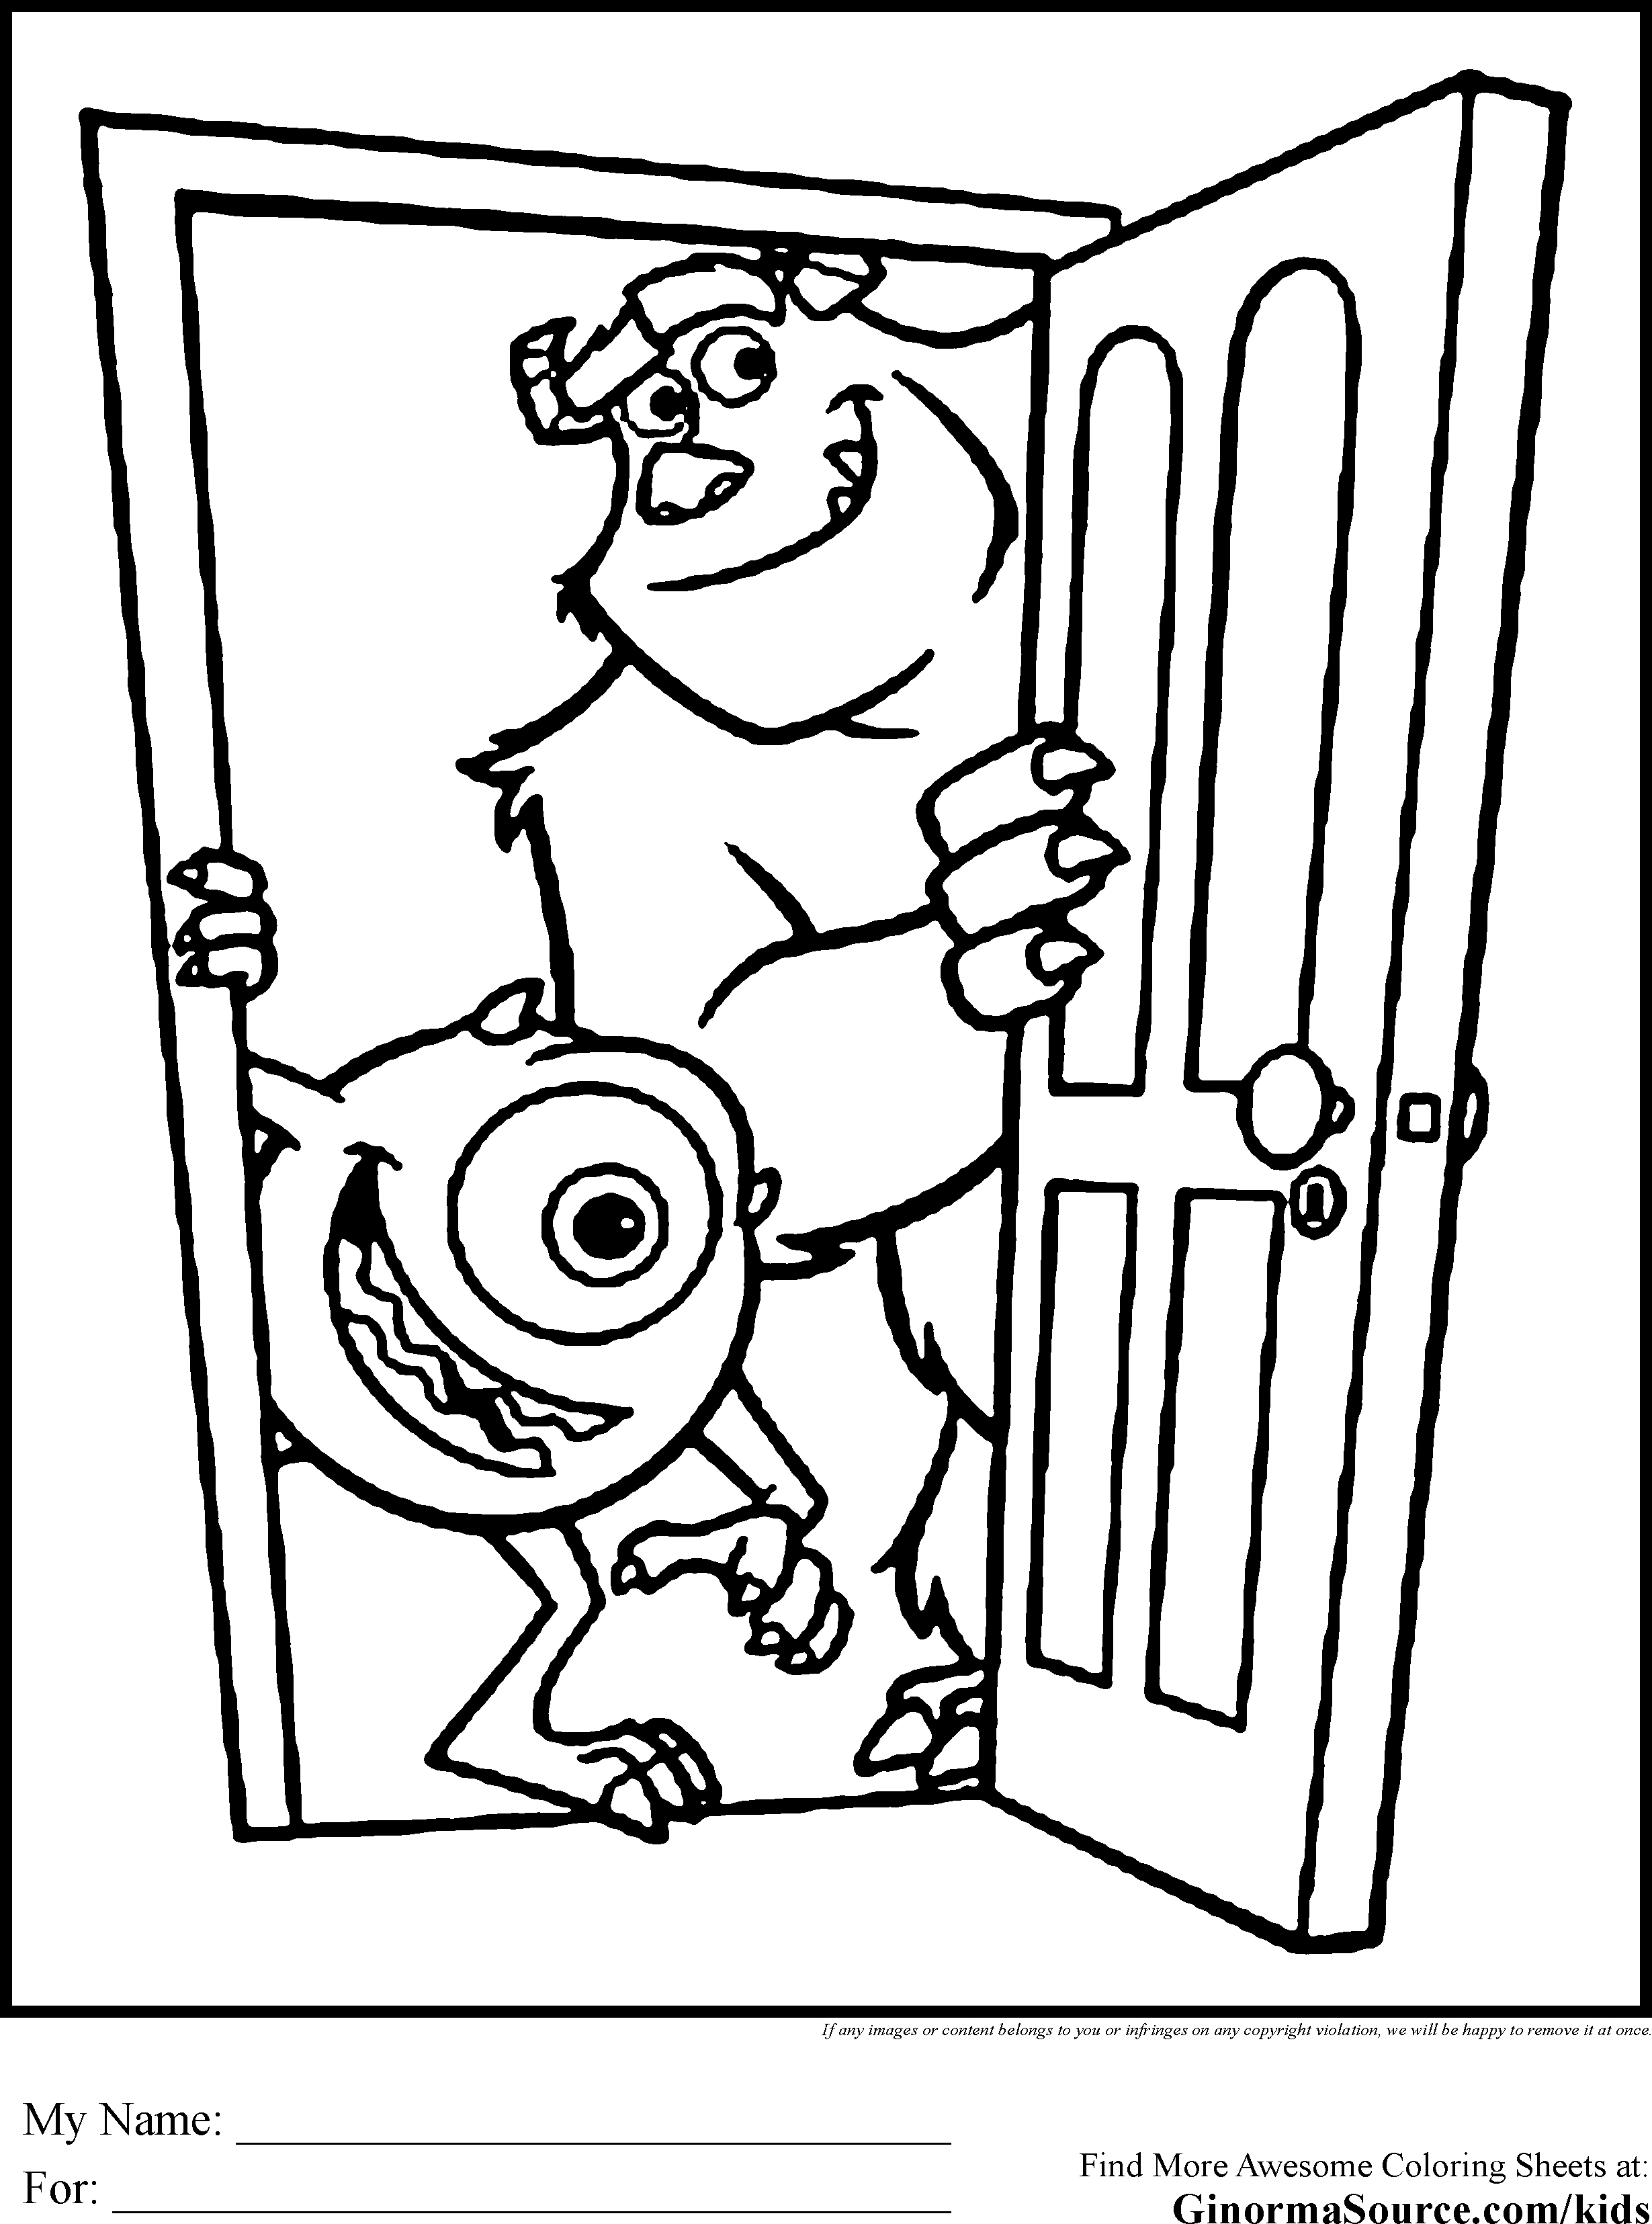 20 Monsters Inc Coloring Pages Printable | FREE COLORING PAGES - Part 3